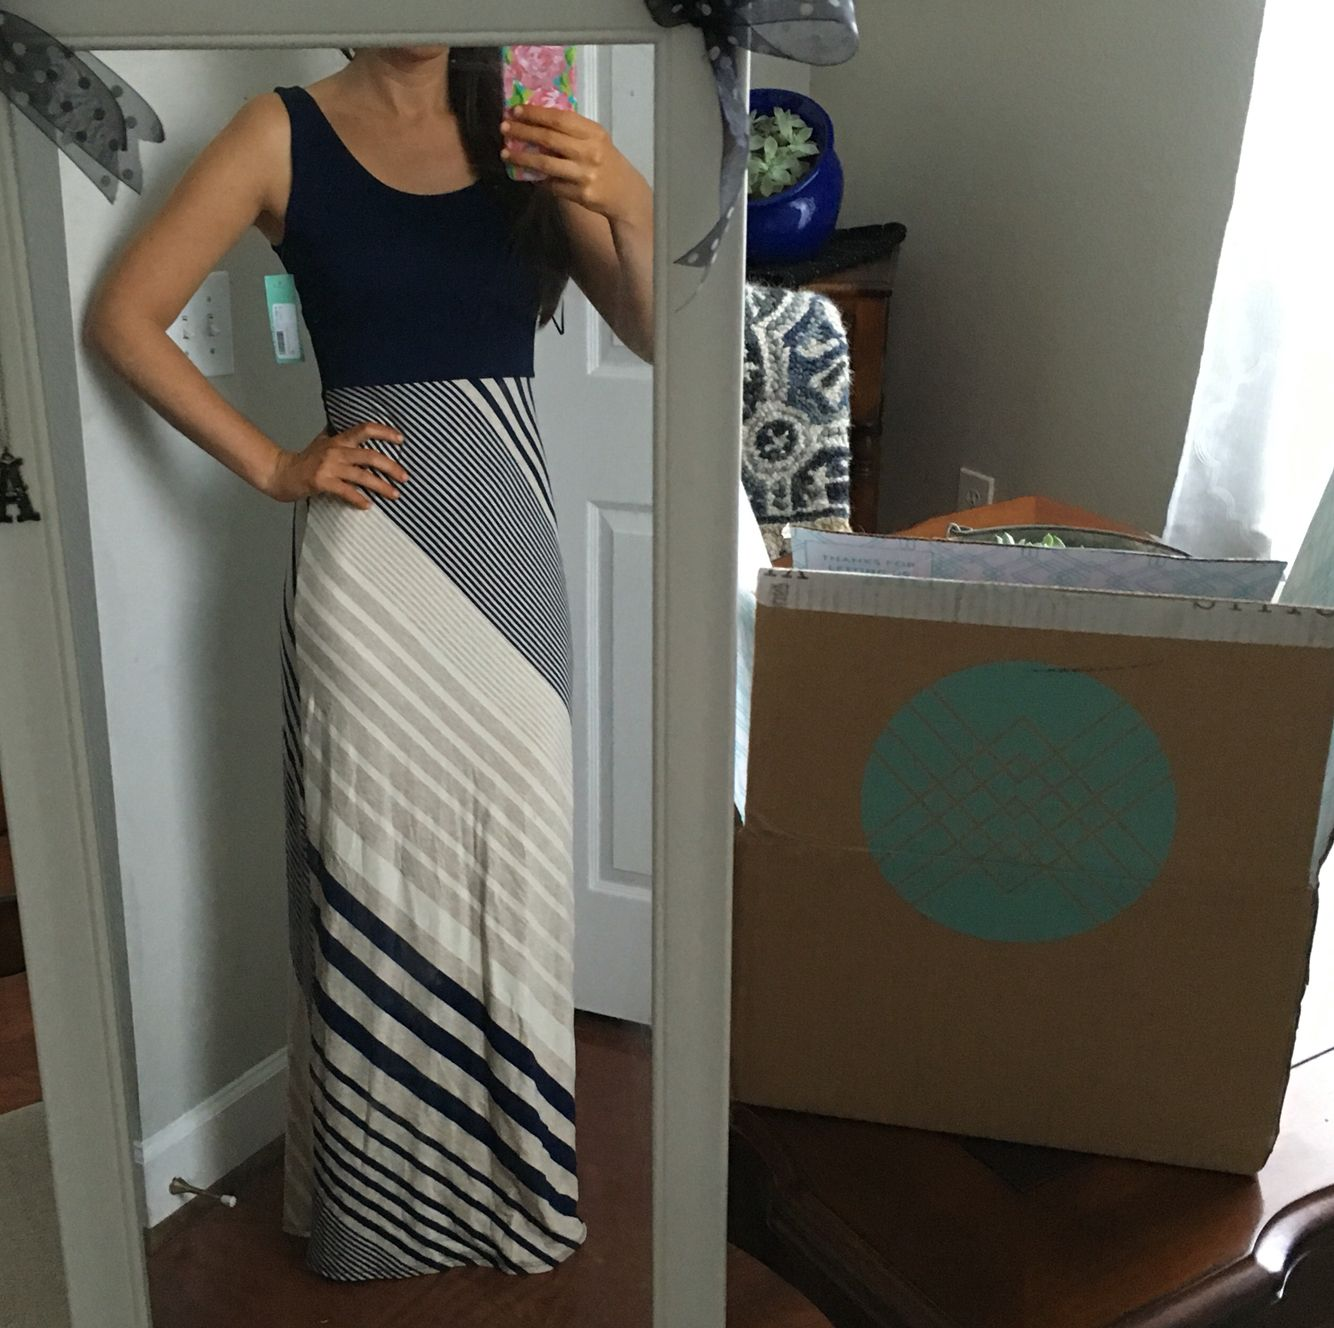 bac982df54 Stitch Fix- Gilli Mitchel Knit Maxi Dress | Fashion, Beauty, Style ...